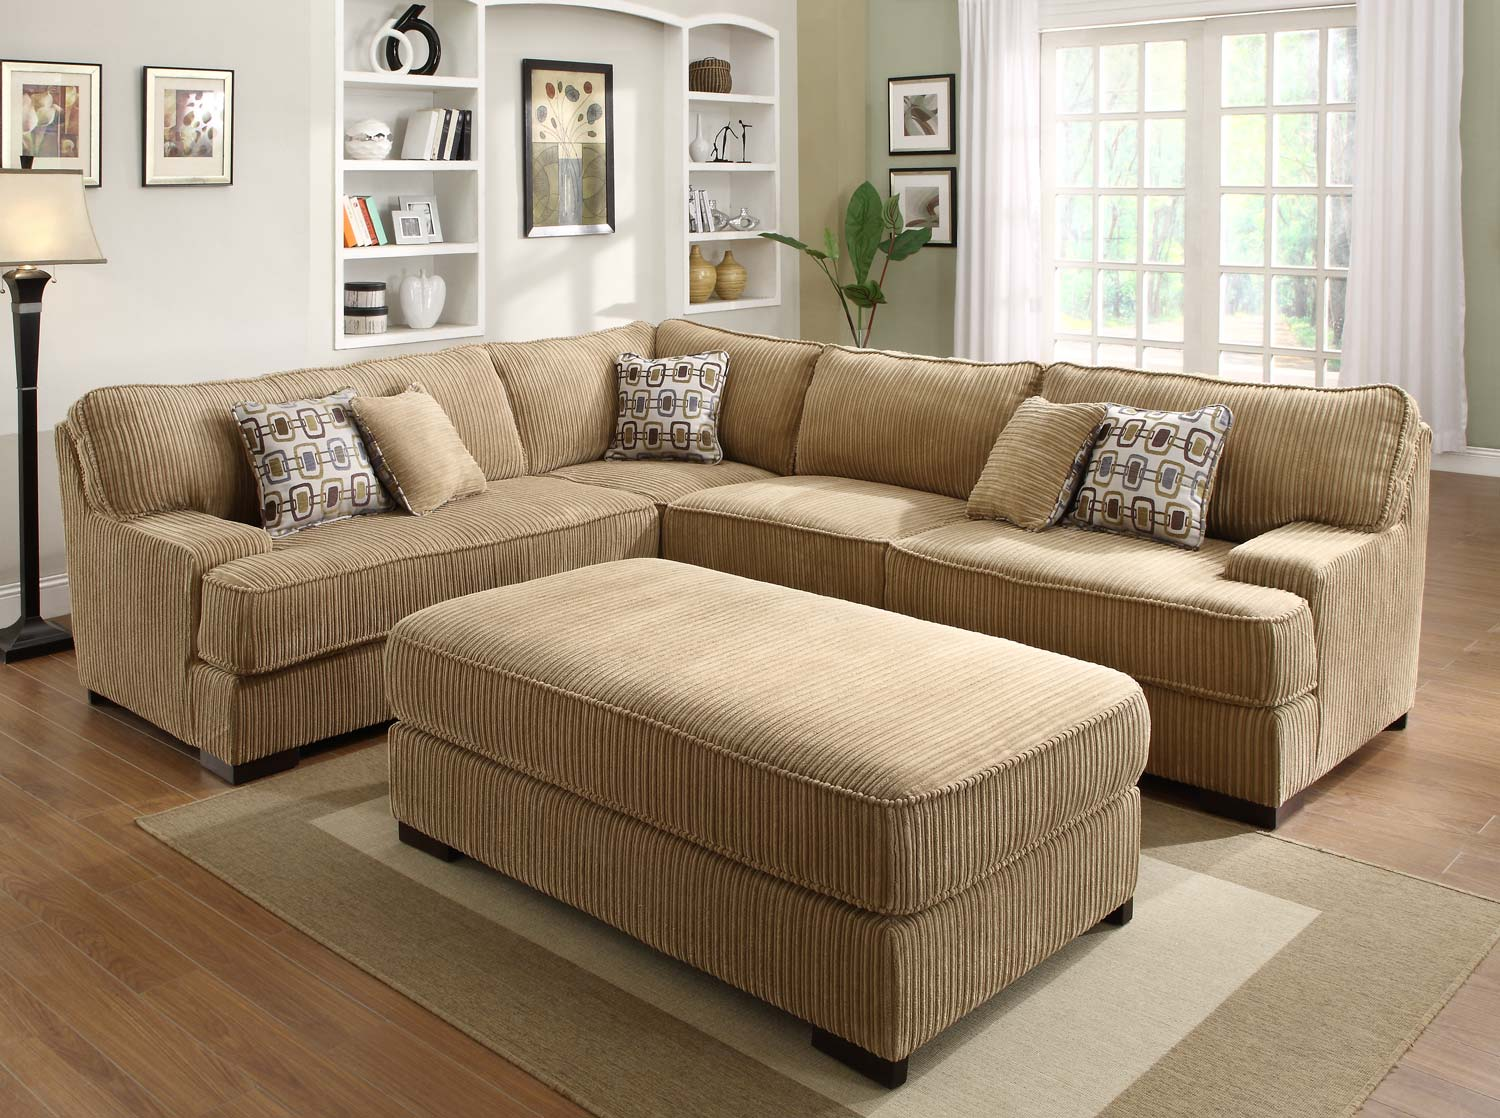 Homelegance minnis sectional sofa set brown u9759 sect for Couch sofa set